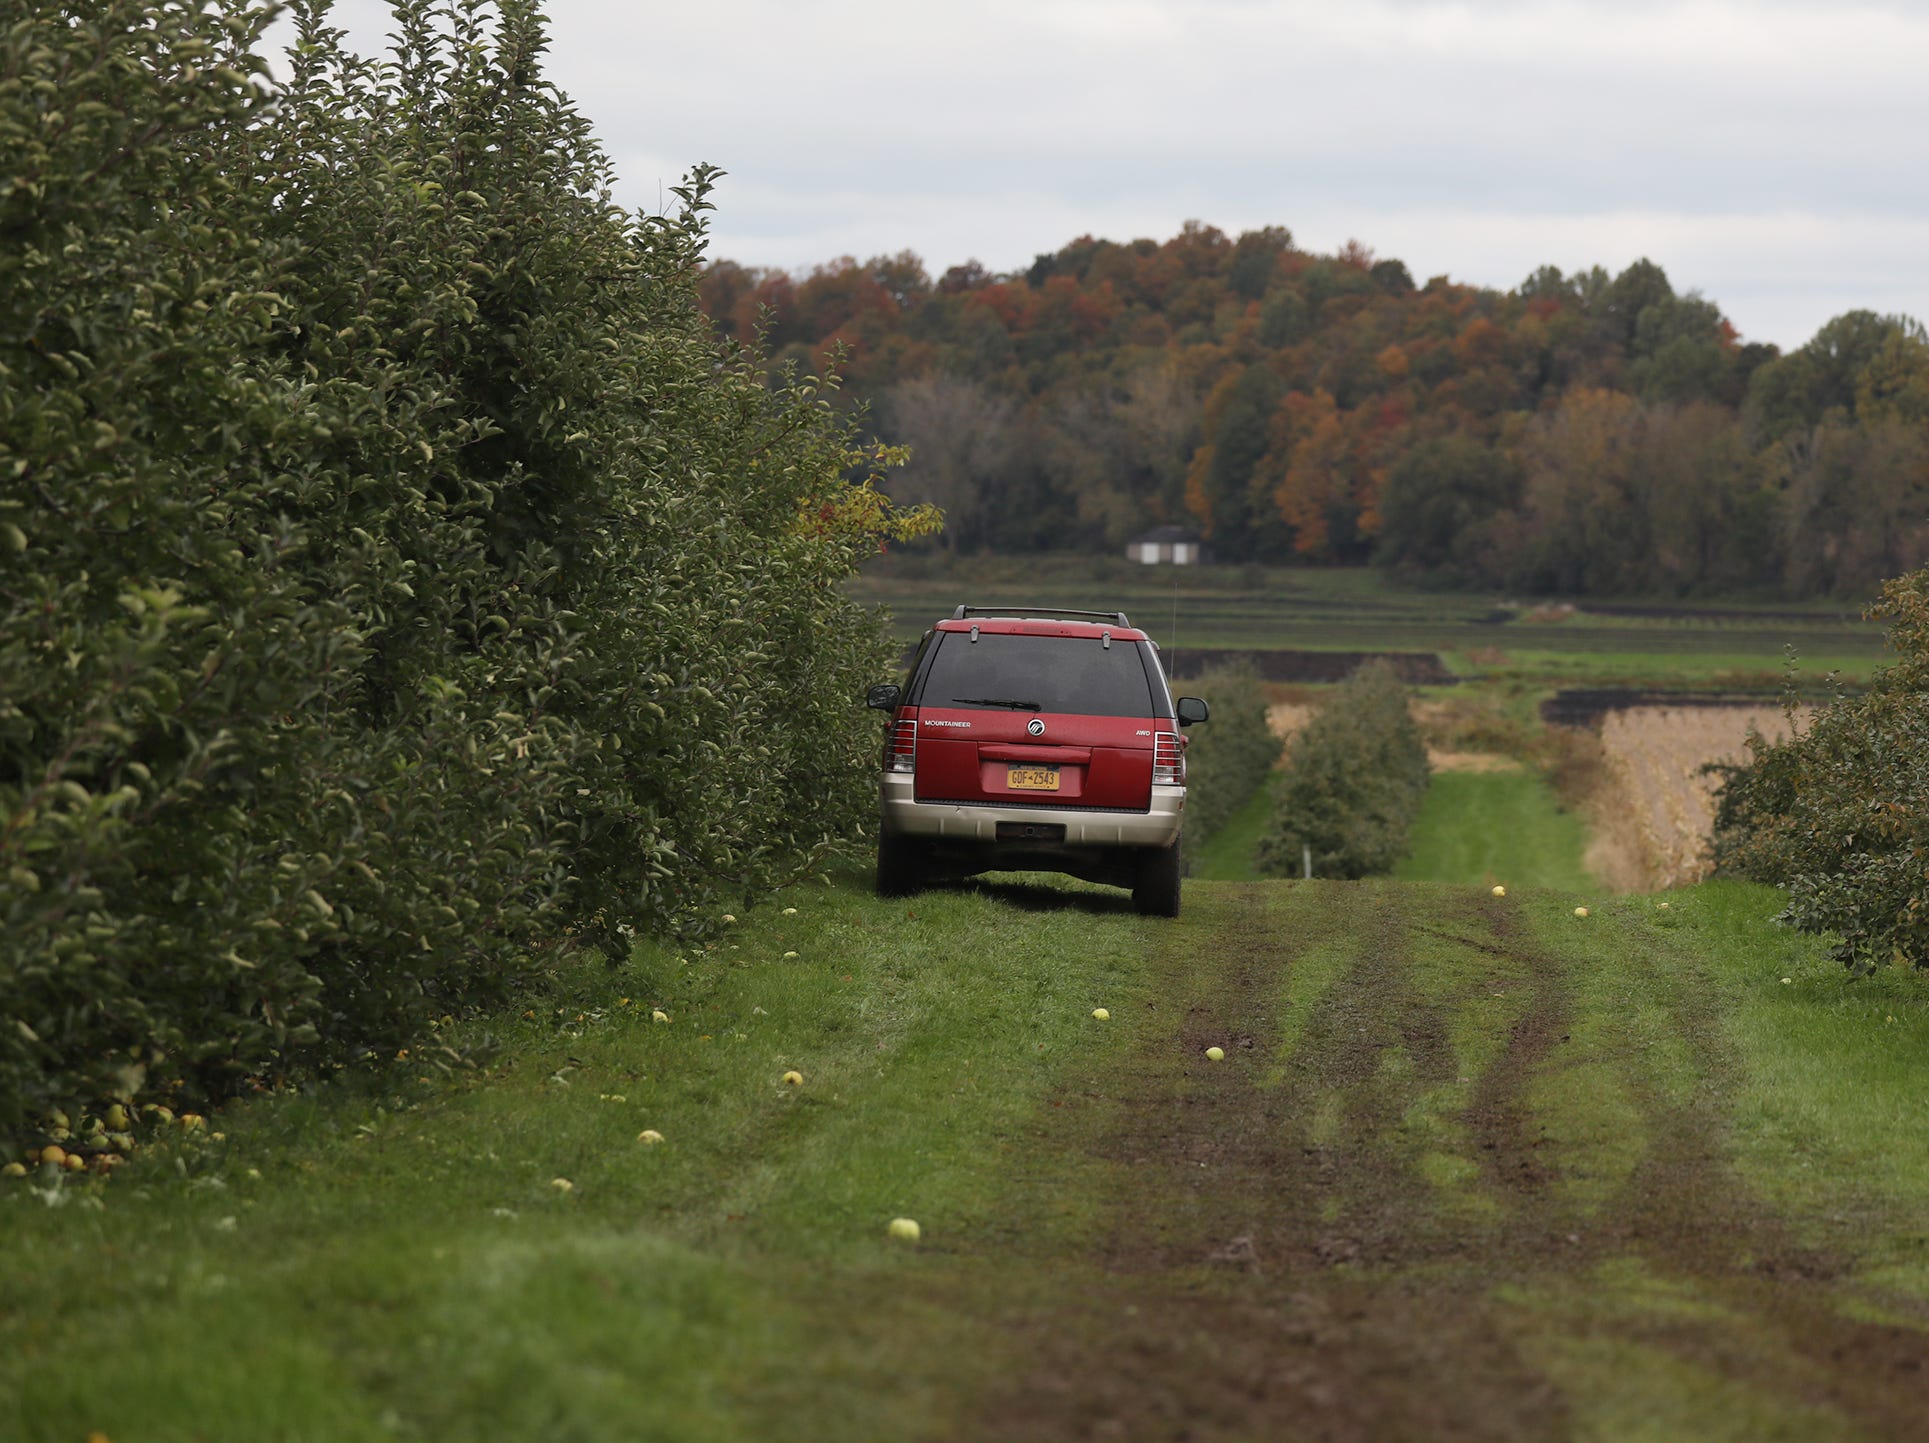 A few cars line up to harvest a row of apples at GMB Beckens Farms LLC.